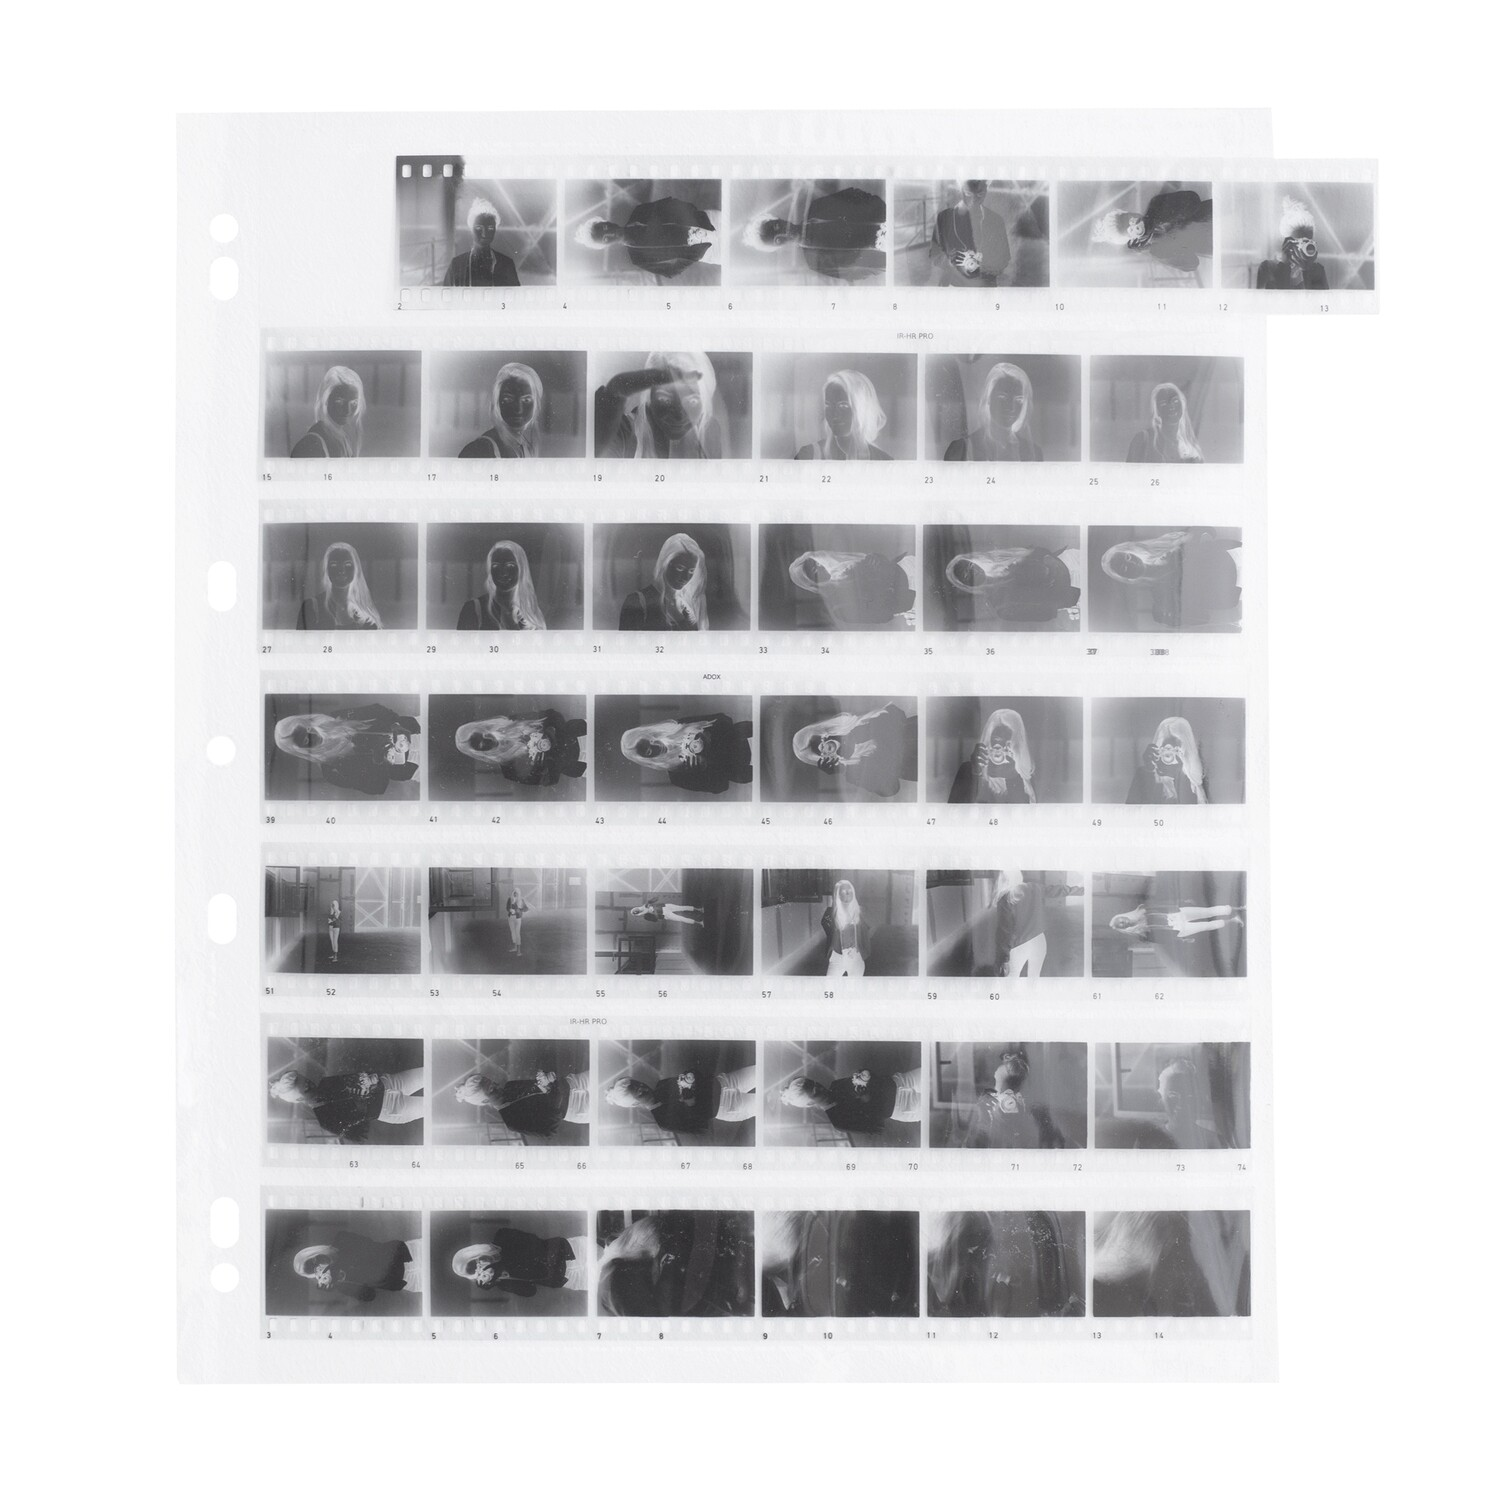 ADOX ADOFILE: Polypropylene sleeves 35mm - (29,3cmx25,6cm) Oversized negative sleeves for 35mm film - 100 sheets